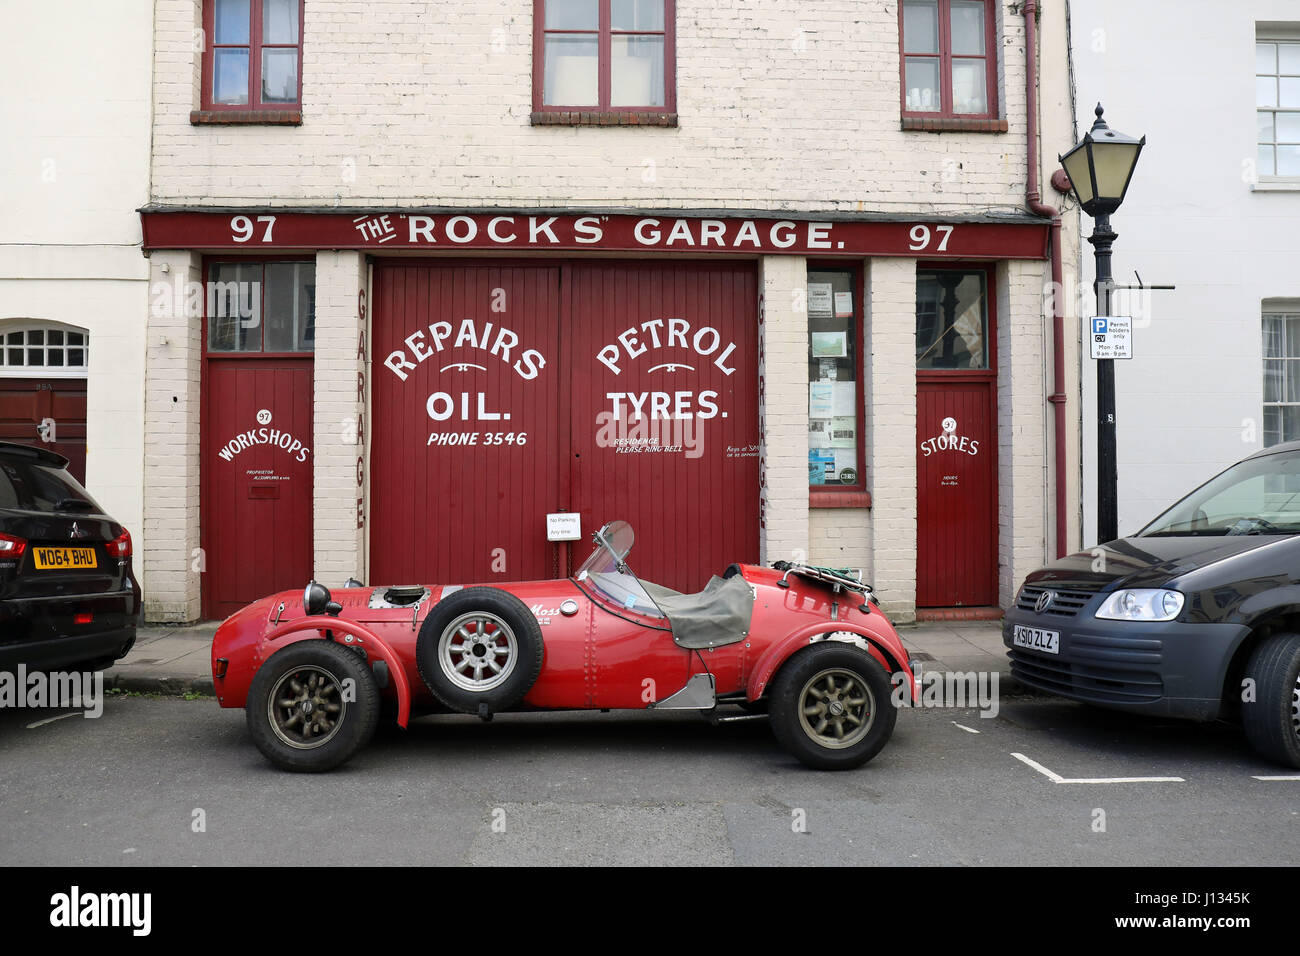 Old Style Garage Stock Photos & Old Style Garage Stock Images - Alamy